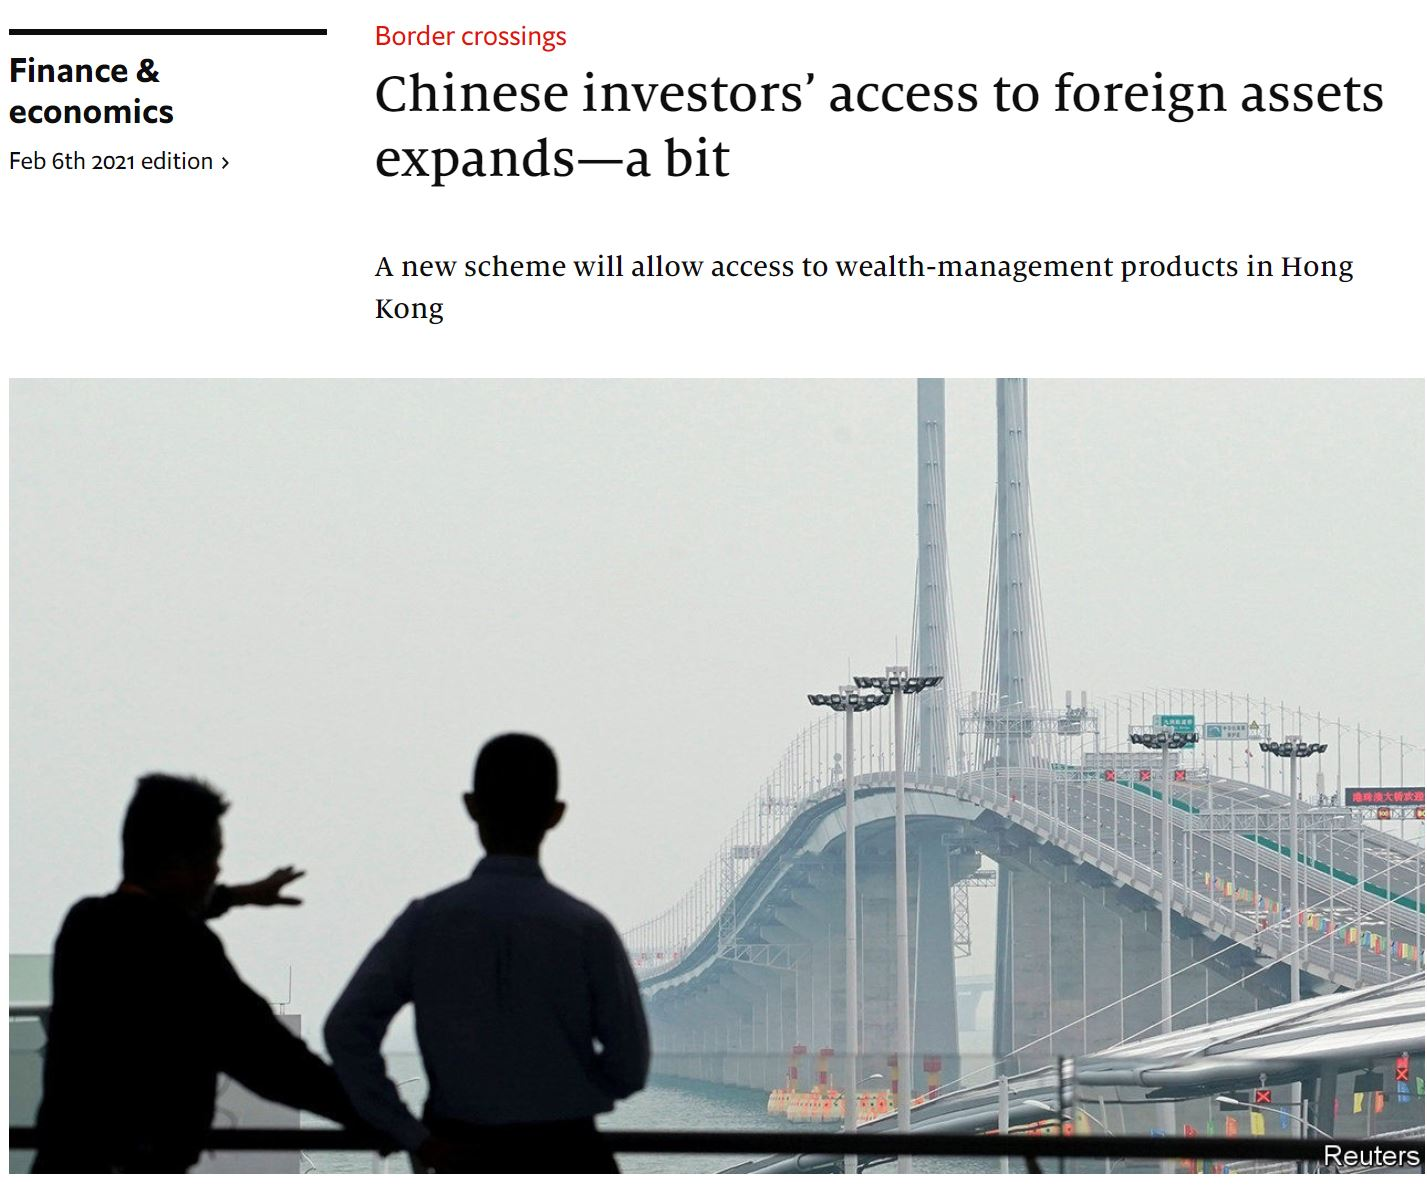 economist_2021-02-06-Chinese investors' access to foreign assets expands—a bit